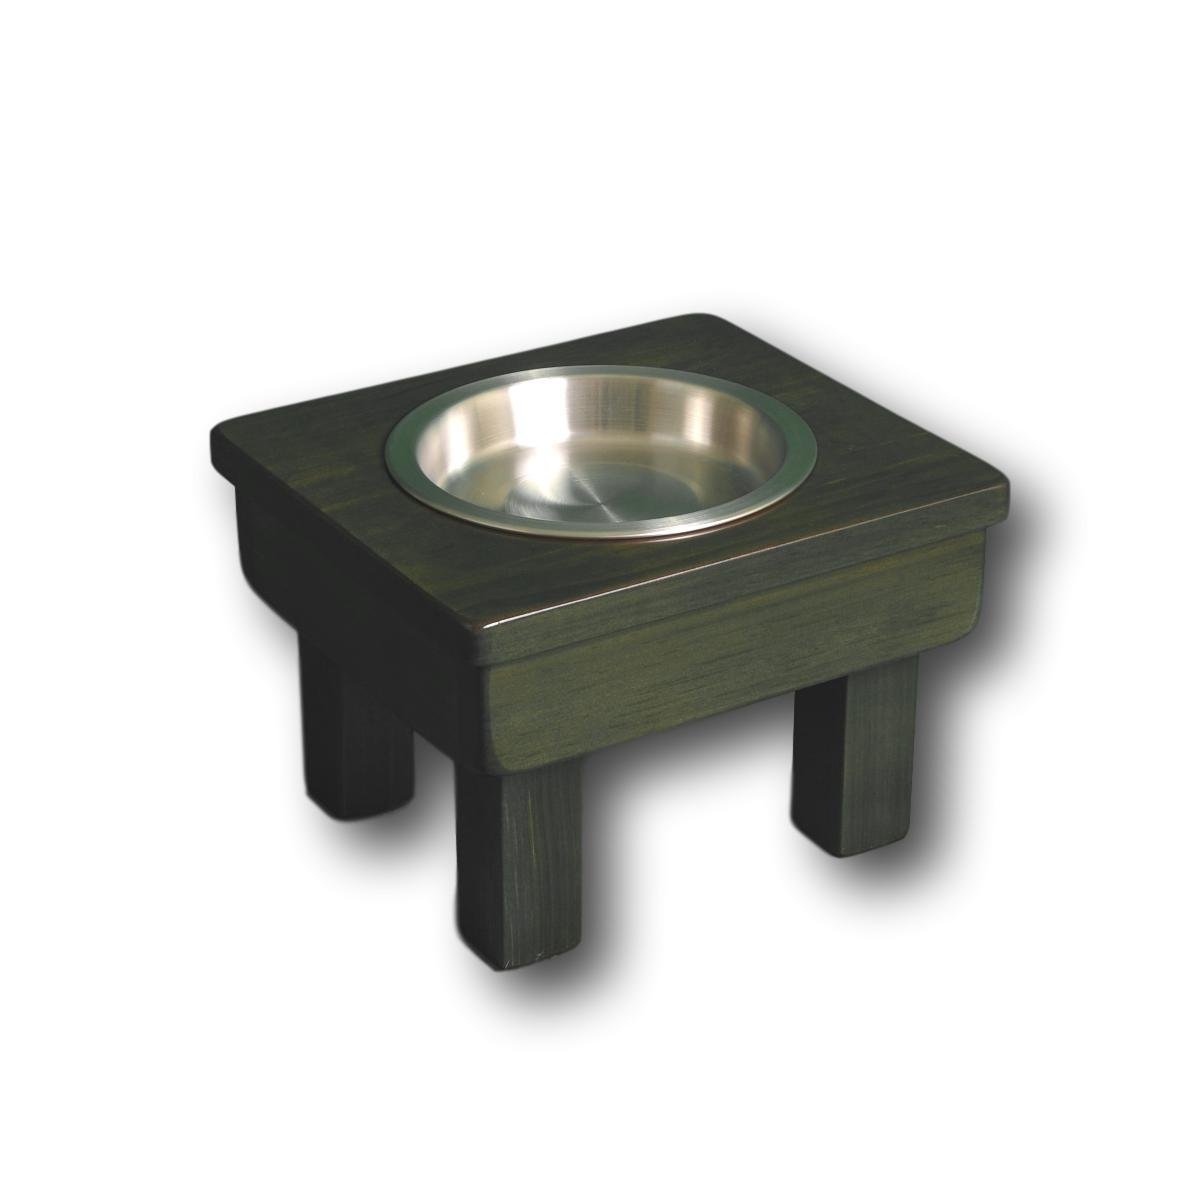 Raised Dog Bowl 7'' tall Small. Shallow Single Bowl Elevated Pet Feeder Stand. Dog or Cat Bowl, with 13 oz. bowl- Prevents whisker fatigue. Non-Toxic and Eco-Friendly, by Ozarks Fehr Trade Originals